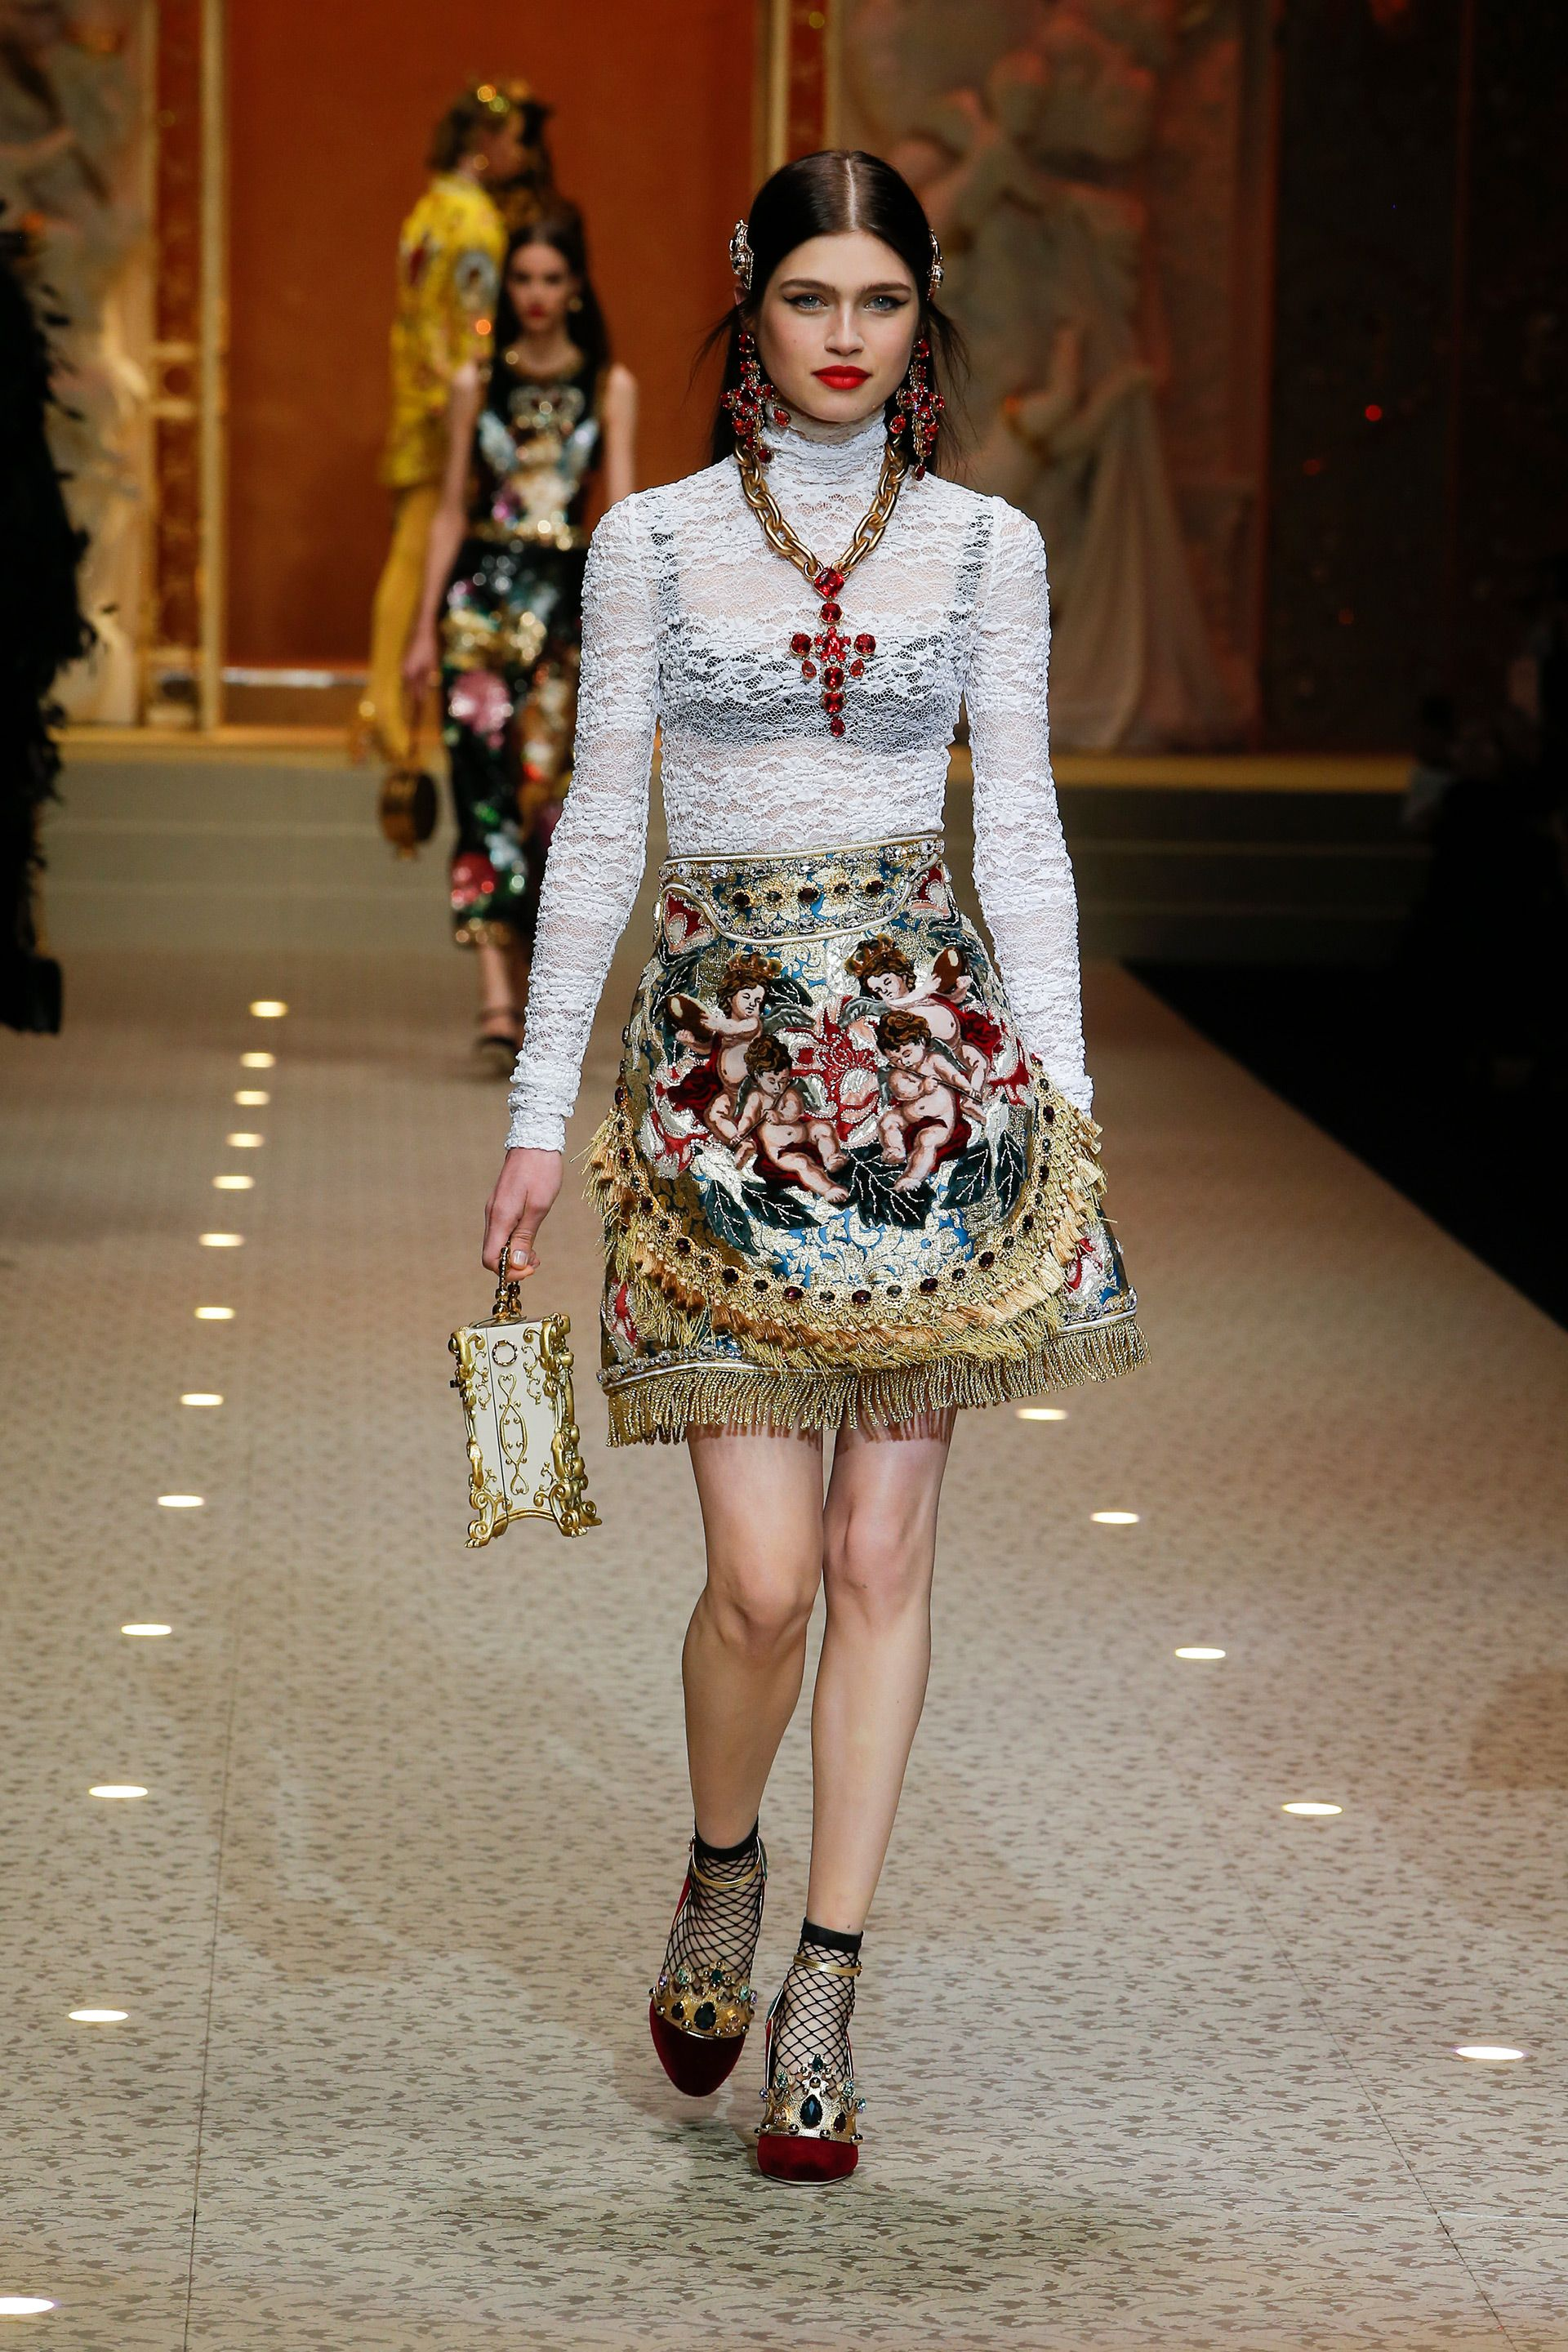 90b49f43951 Discover Videos and Pictures of Dolce   Gabbana Fall Winter 2018-19  Womenswear Fashion Show on Dolcegabbana.com.